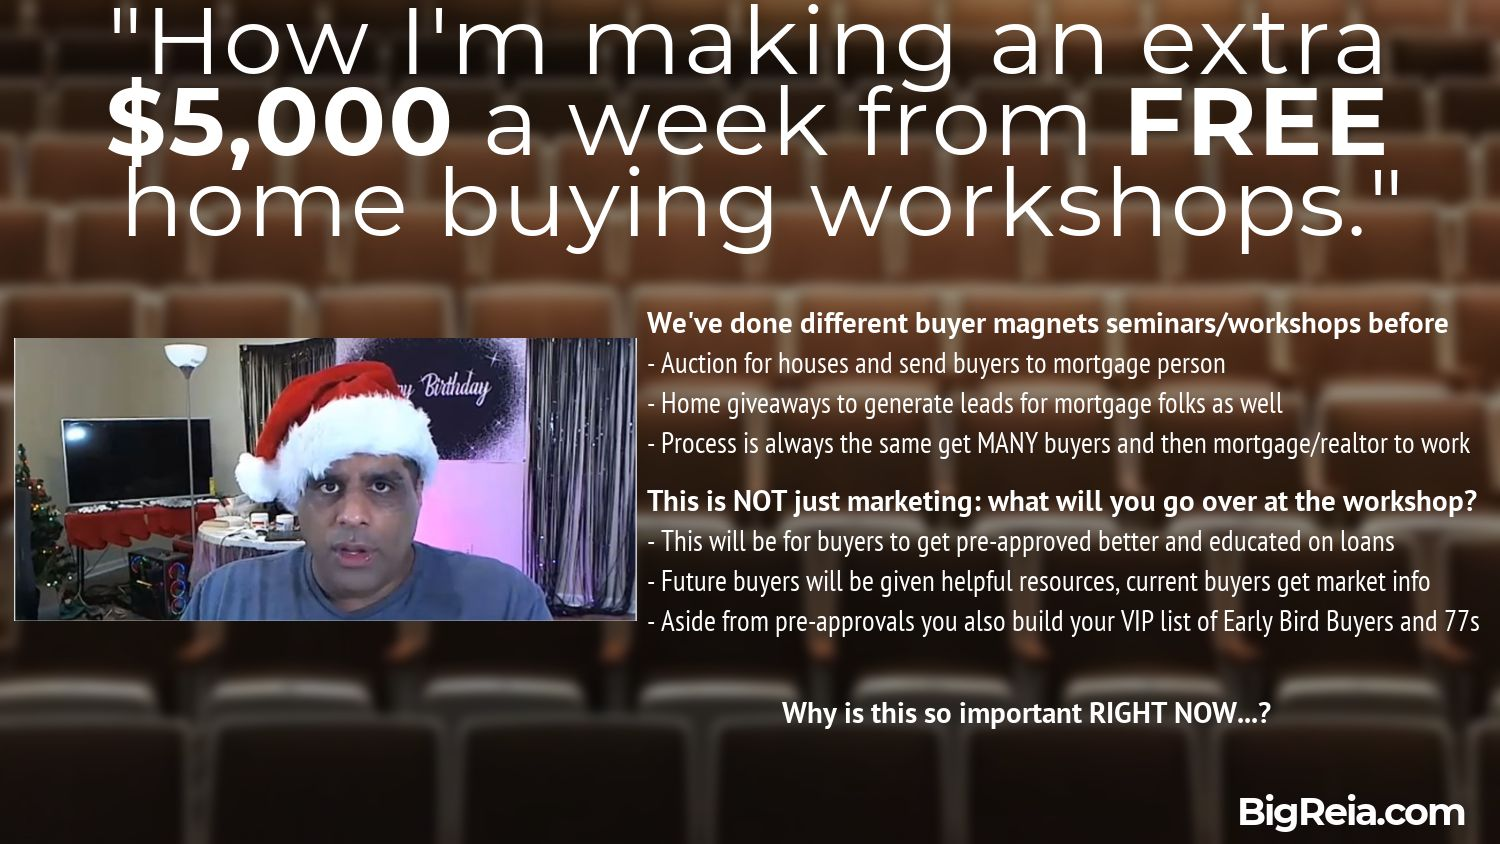 Home buying workshops for 5k a week